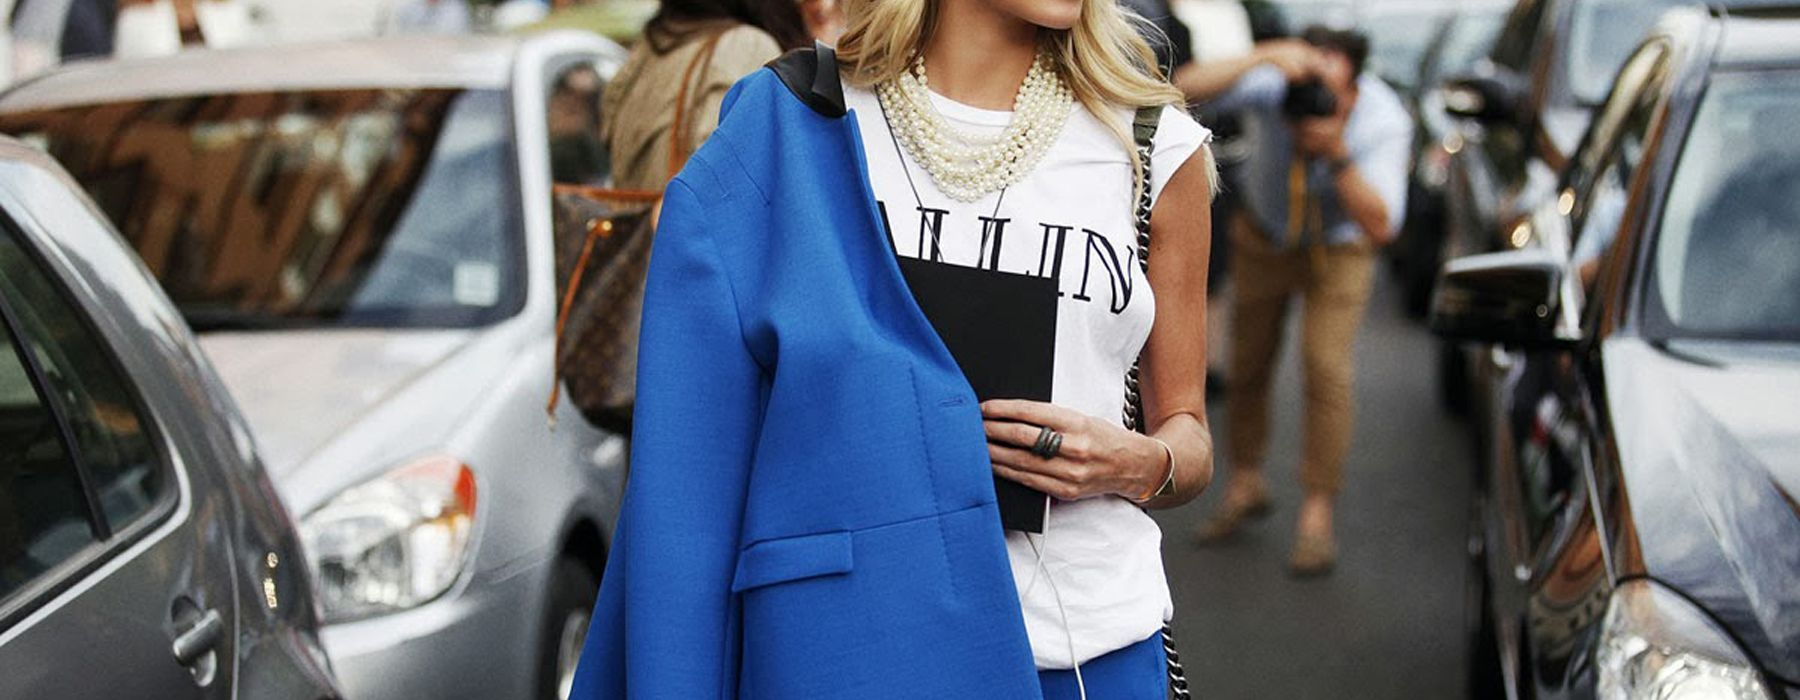 Tendenza blu: i capi e gli accessori must